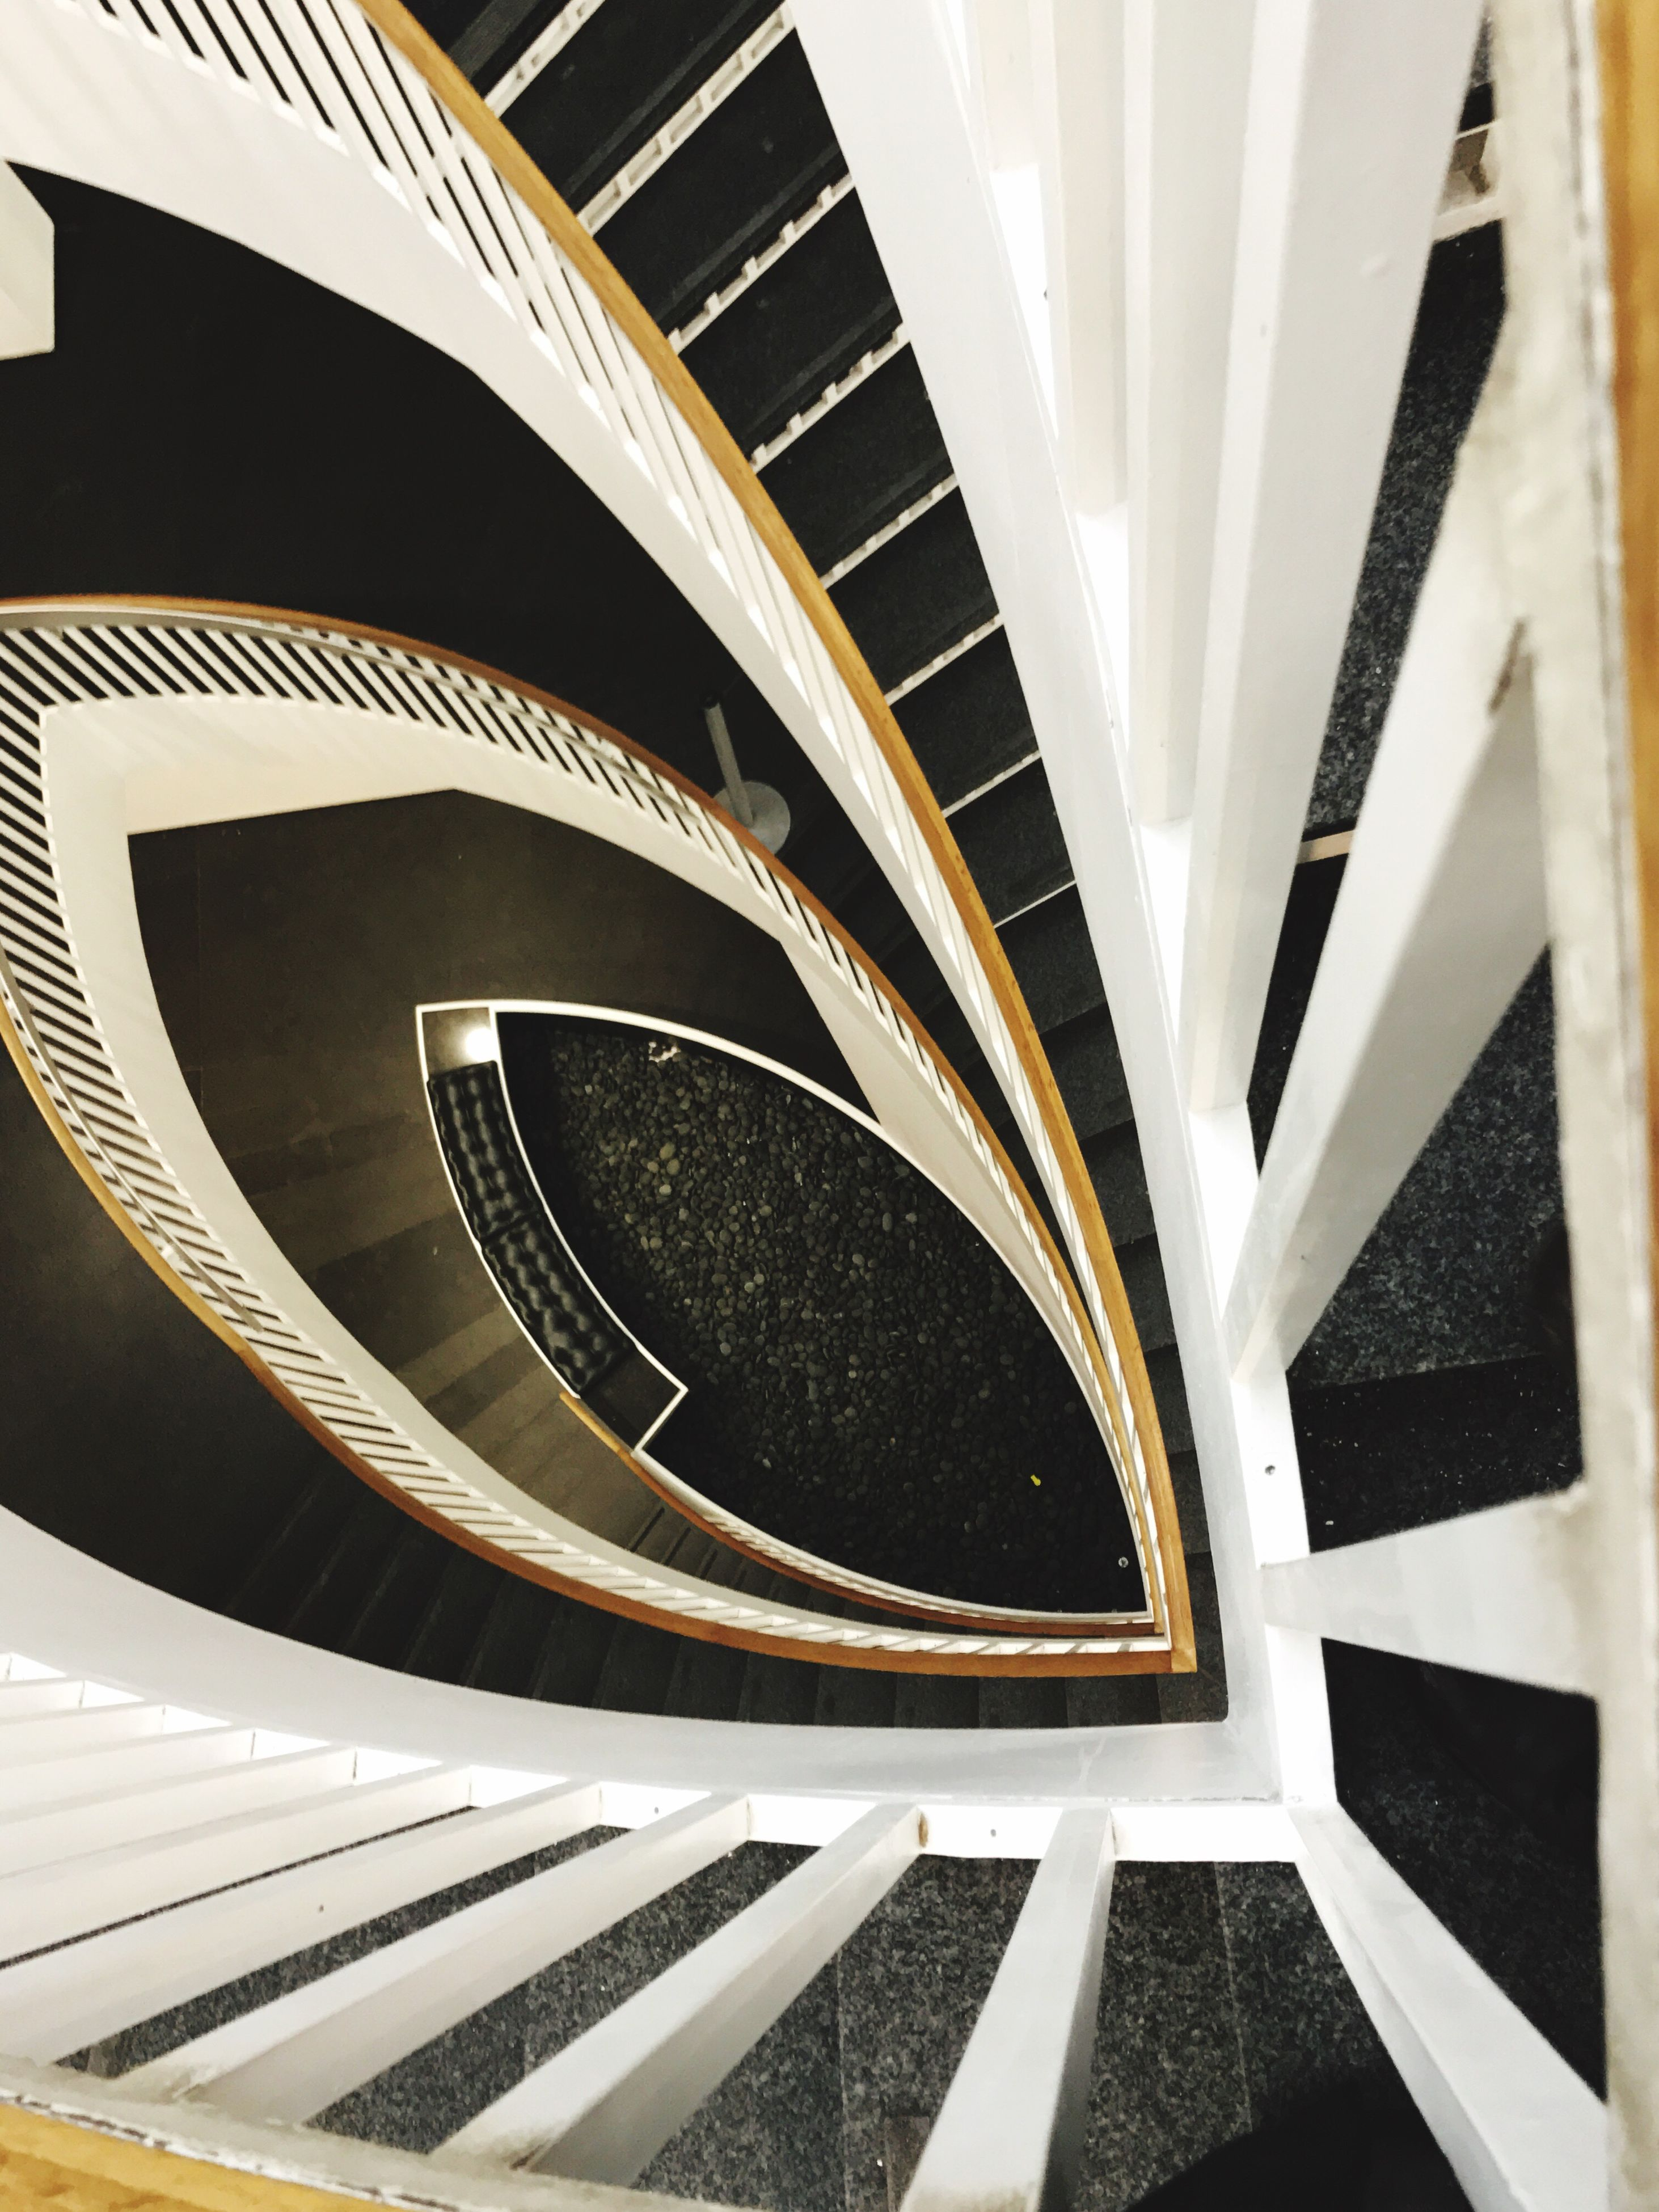 spiral, pattern, no people, steps and staircases, close-up, staircase, spiral staircase, built structure, indoors, architecture, day